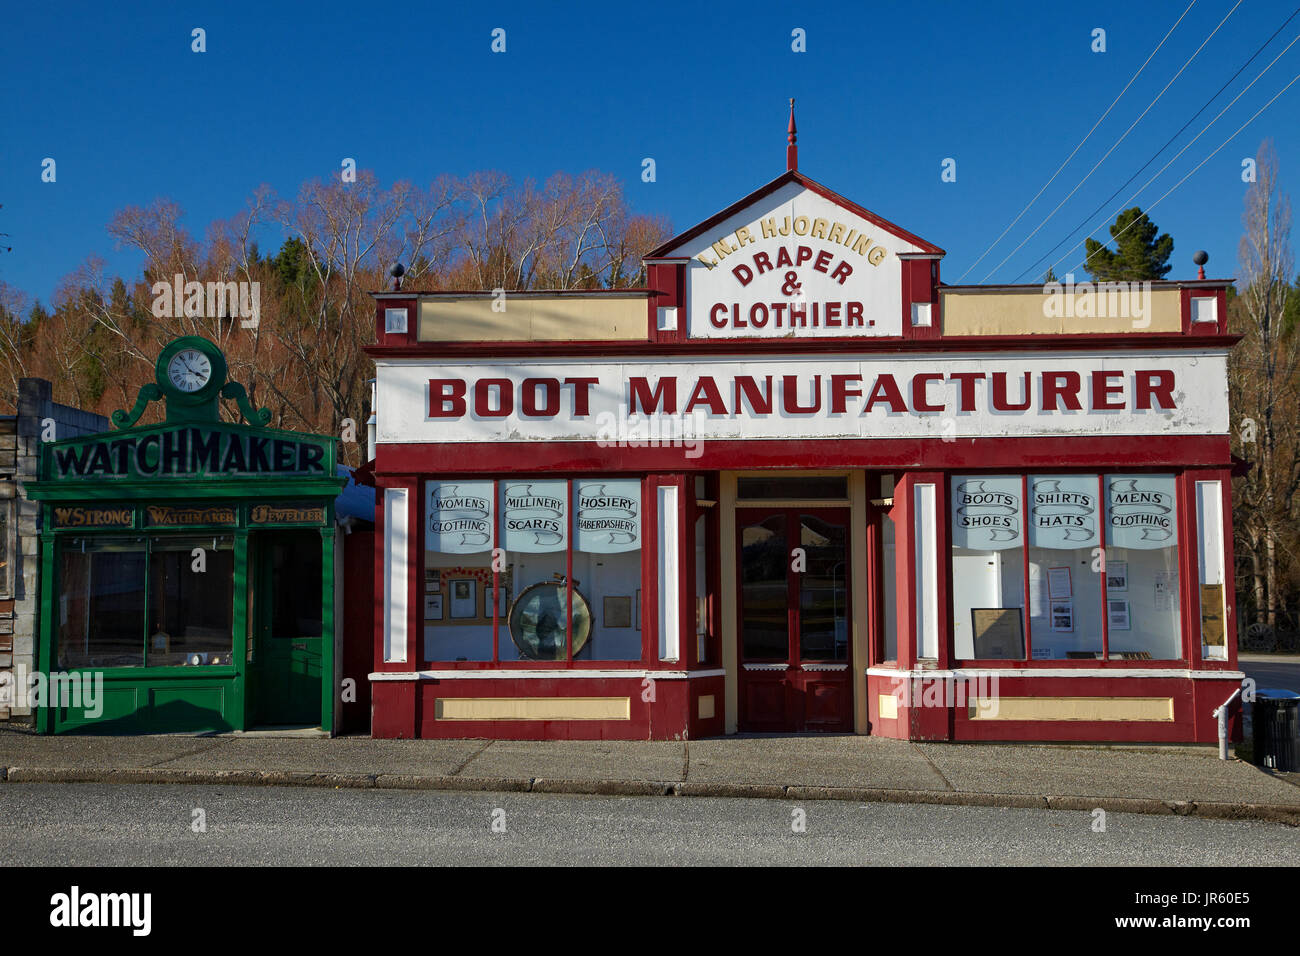 Strong's Watchmaker Shop (built late 1860s) and historic I.N.P. Hjorring, Draper & Clothier, Boot Manufacturer Shop (now Naseby Museum), Naseby, Manio - Stock Image